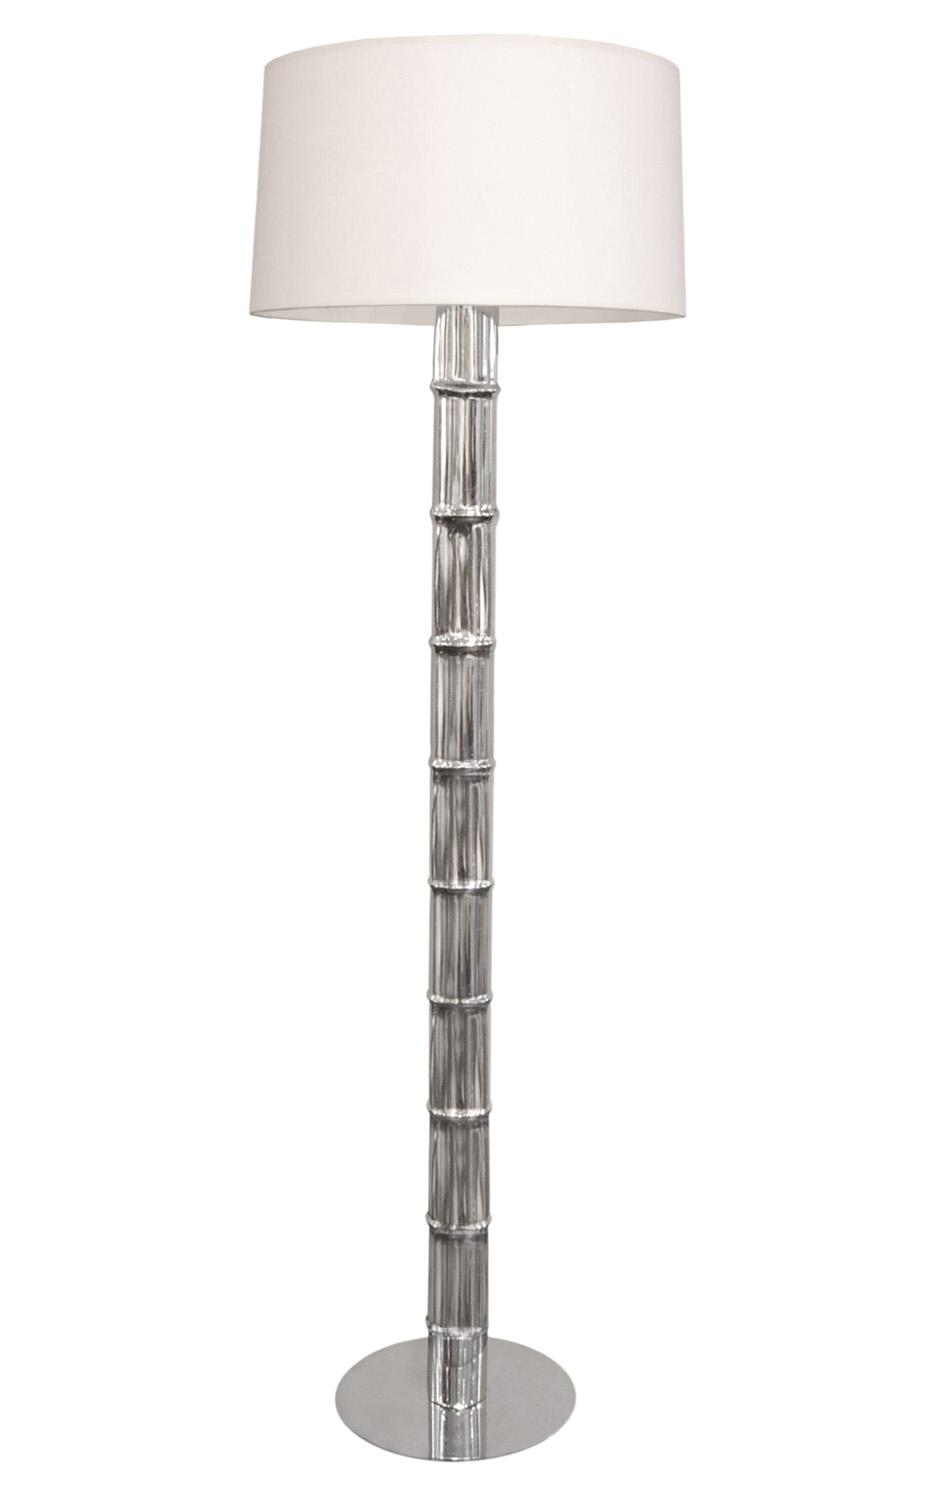 70's 35 chrome thick bamboo floorlamp116 hires.jpg